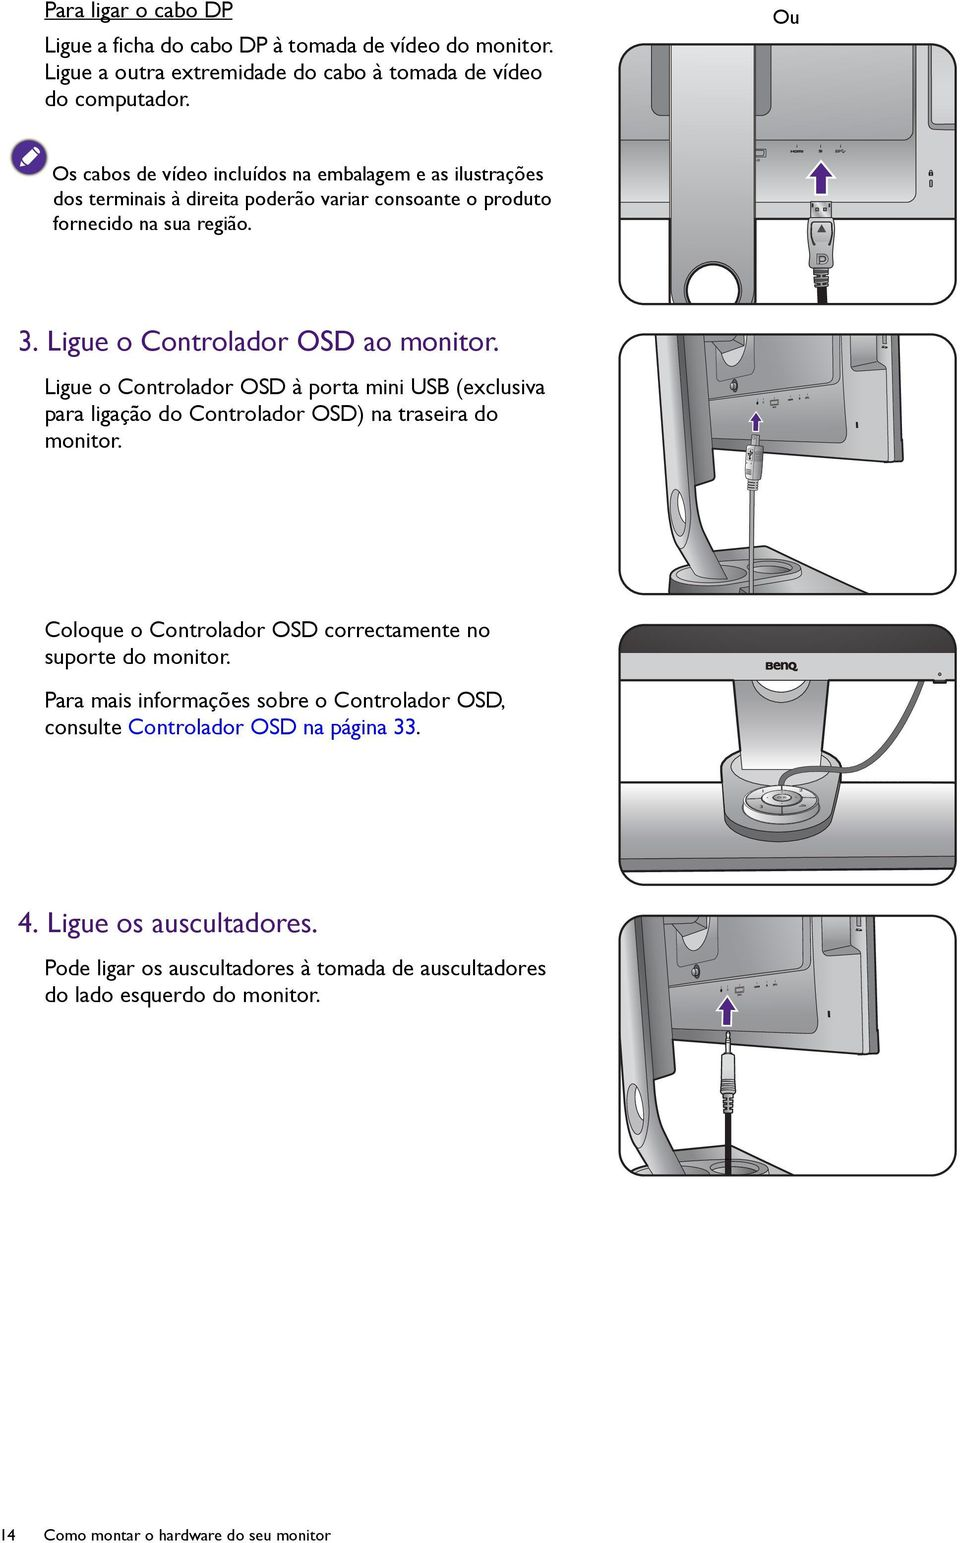 Ligue o Controlador OSD à porta mini USB (exclusiva para ligação do Controlador OSD) na traseira do monitor. Coloque o Controlador OSD correctamente no suporte do monitor.